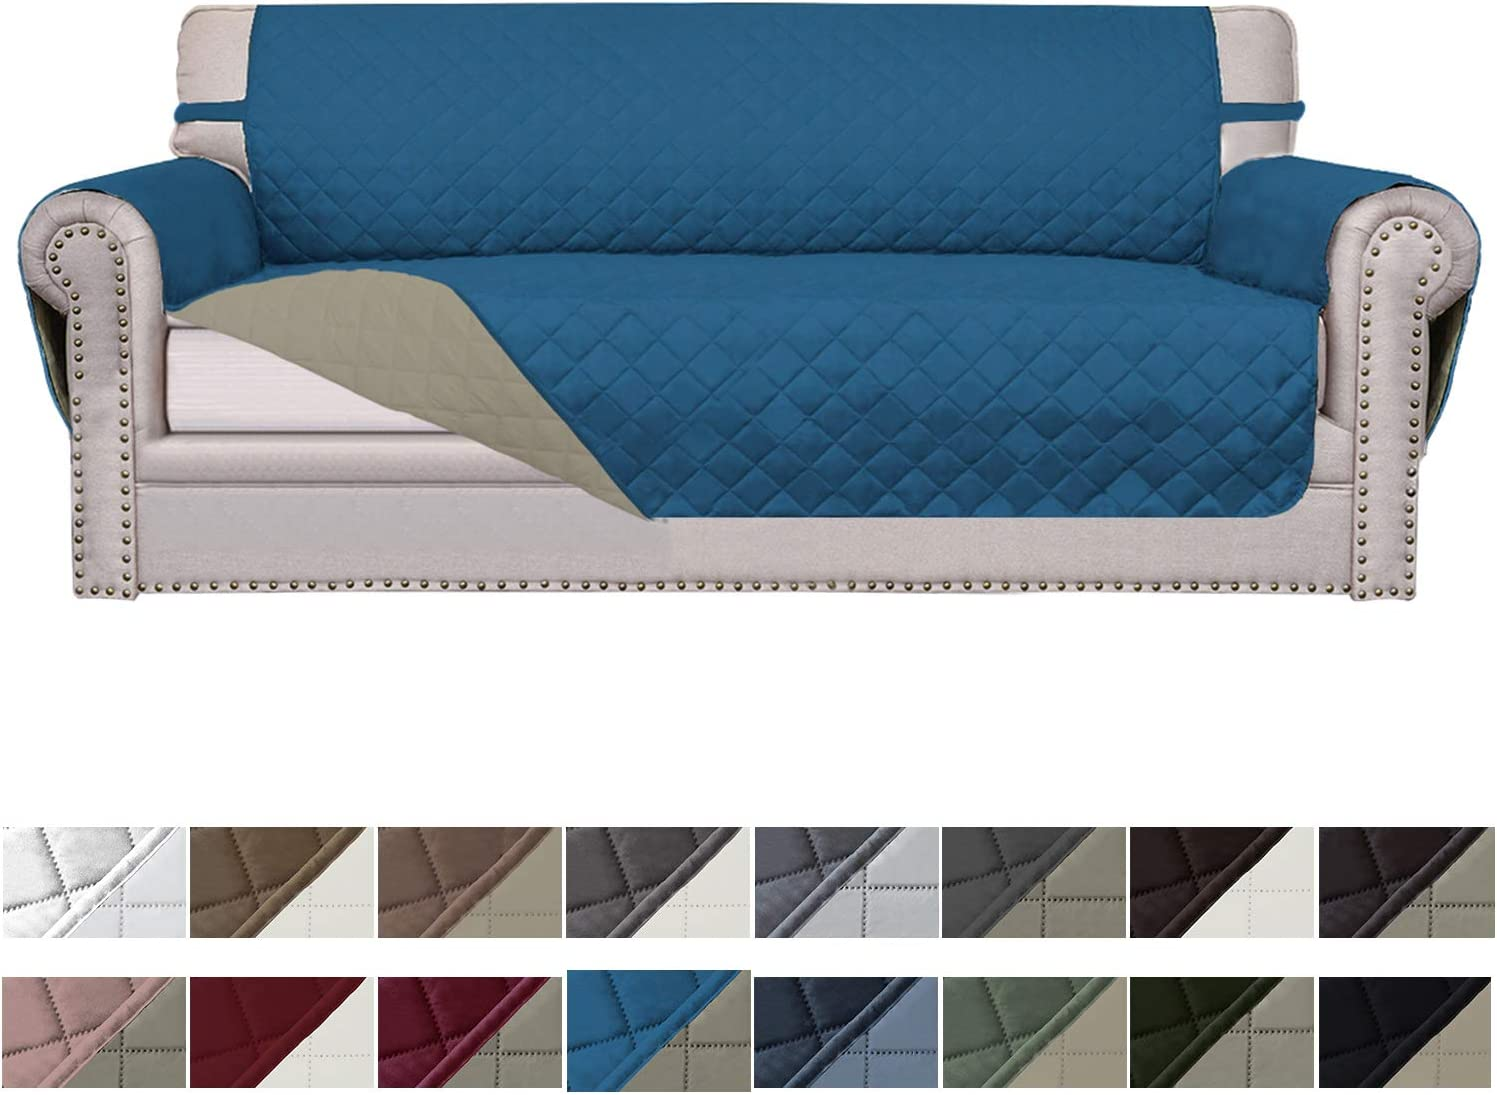 Easy-Going Sofa Slipcover Reversible Sofa Cover Water Resistant Couch Cover Furniture Protector with Elastic Straps for Pets Kids Children Dog Cat(Oversized Sofa,PeacockBlue/Beige)